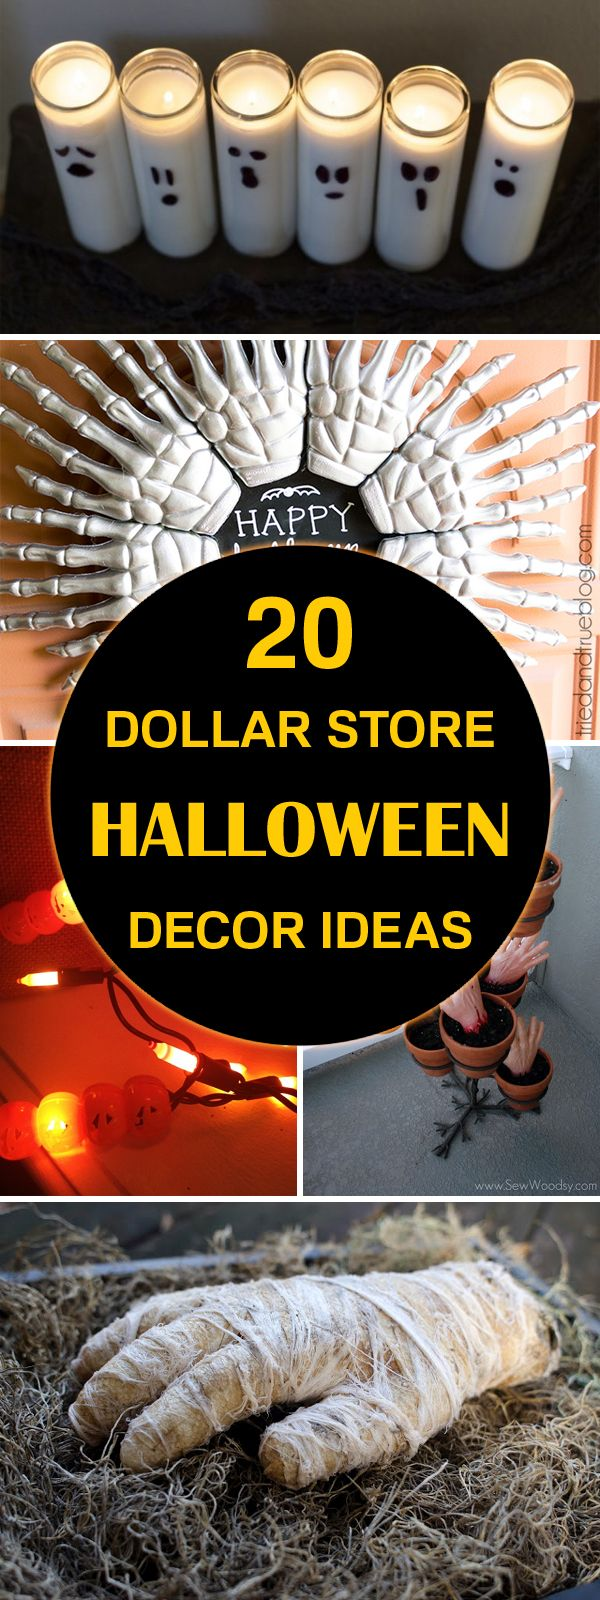 Easy homemade halloween decorations - 20 Dollar Store Halloween Decor Ideas Halloween Decorations Diy Easydiy